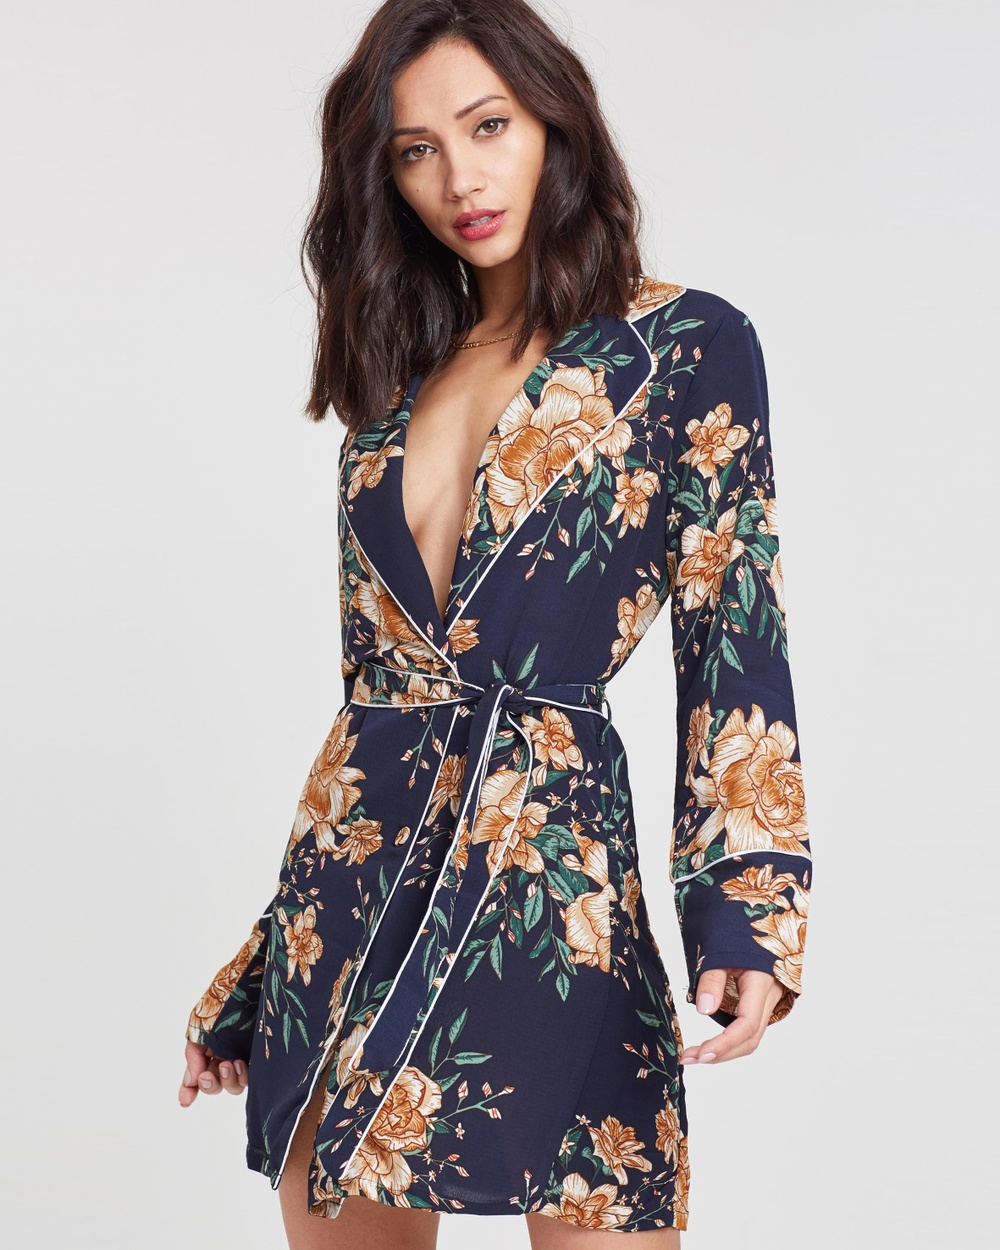 Missguided Ruffle Midi Tea Dress Printed Dresses Navy Ruffle Midi Tea Dress